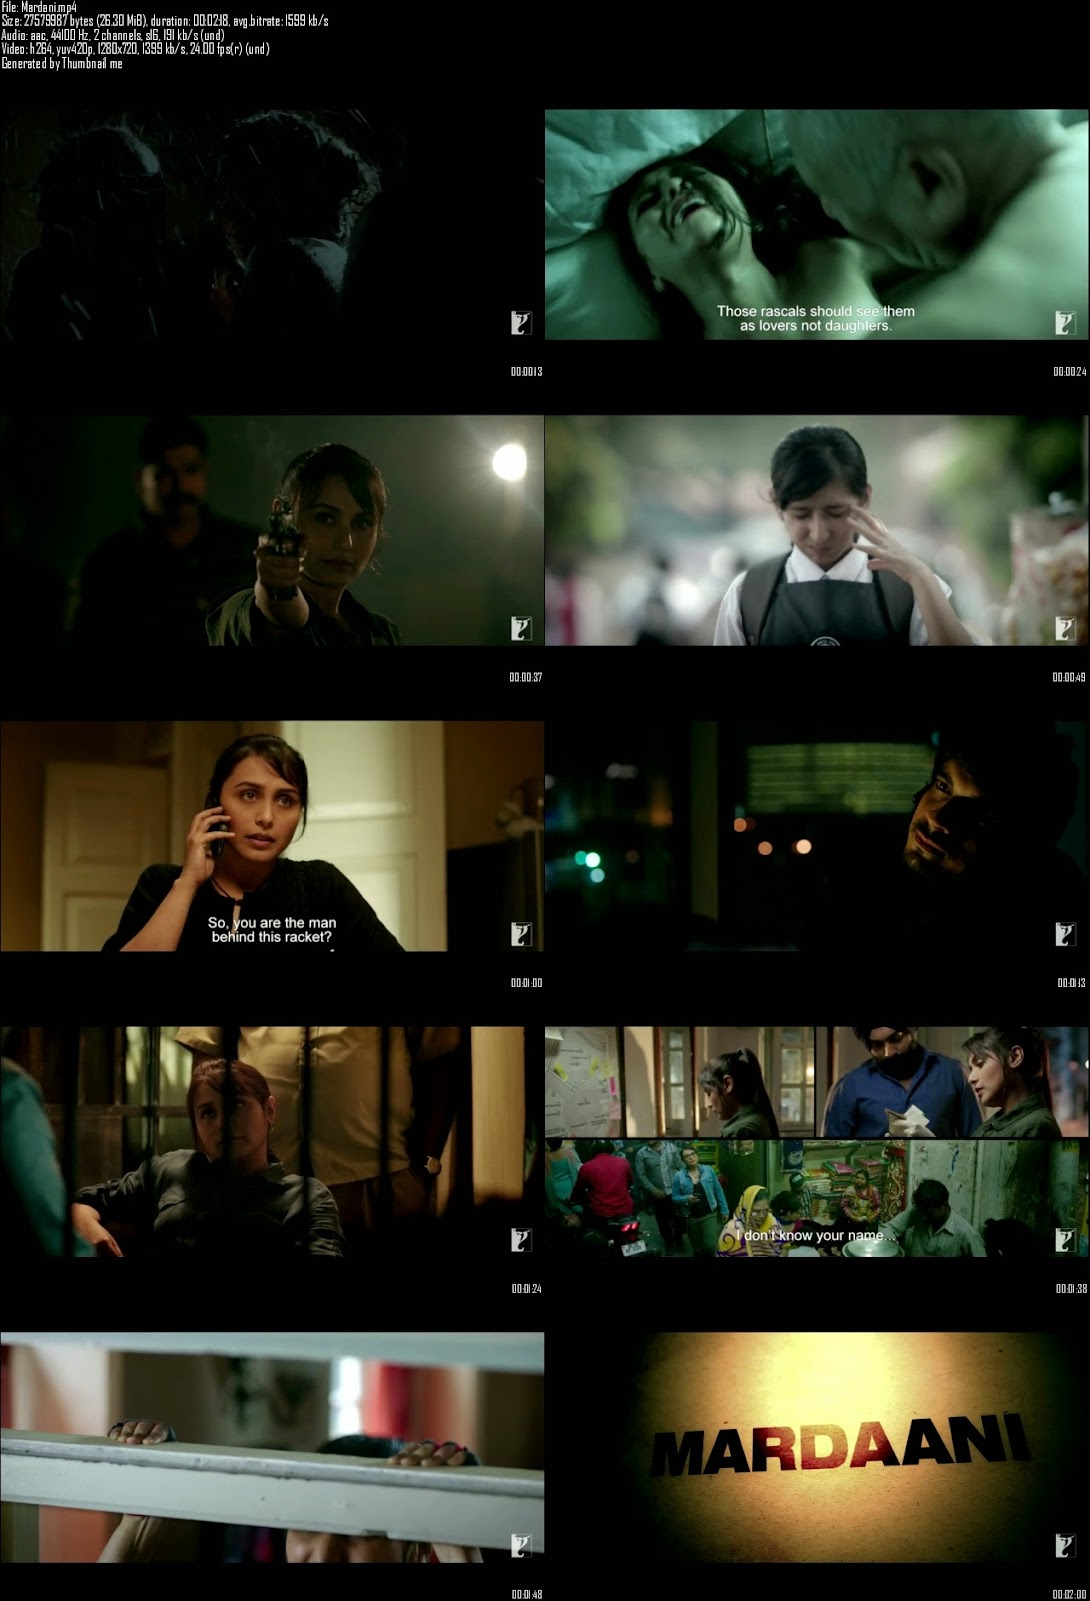 Mediafire Resumable Download Link For Teaser Promo Of Mardaani (2014)